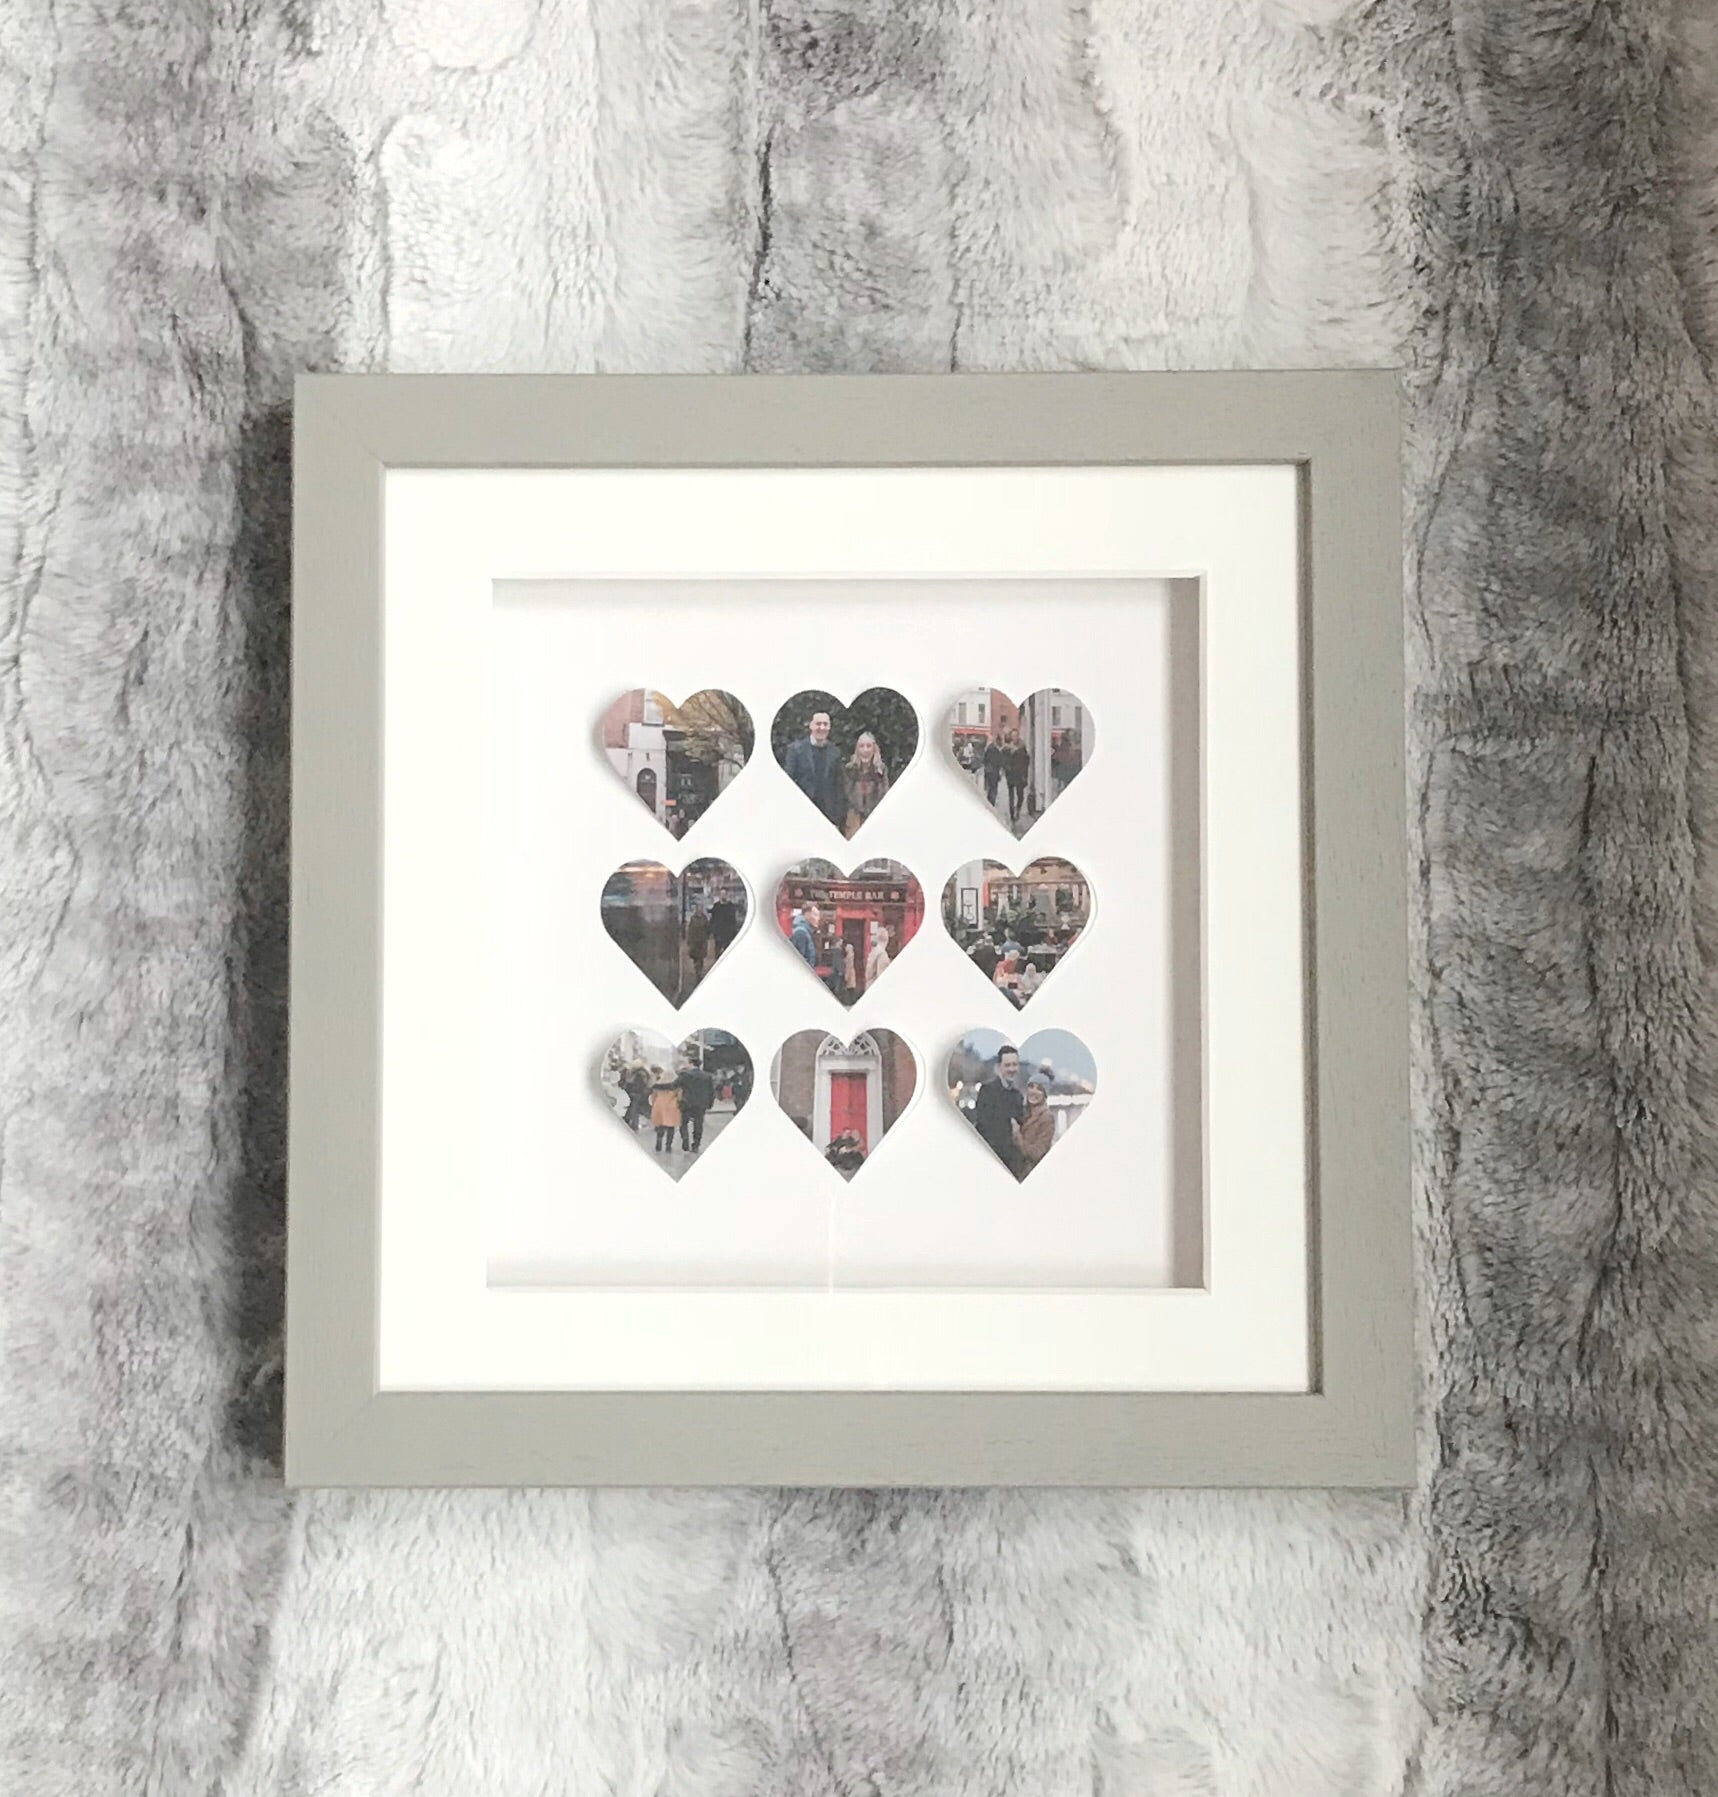 Personalised heart frame - 9 hearts medium frame